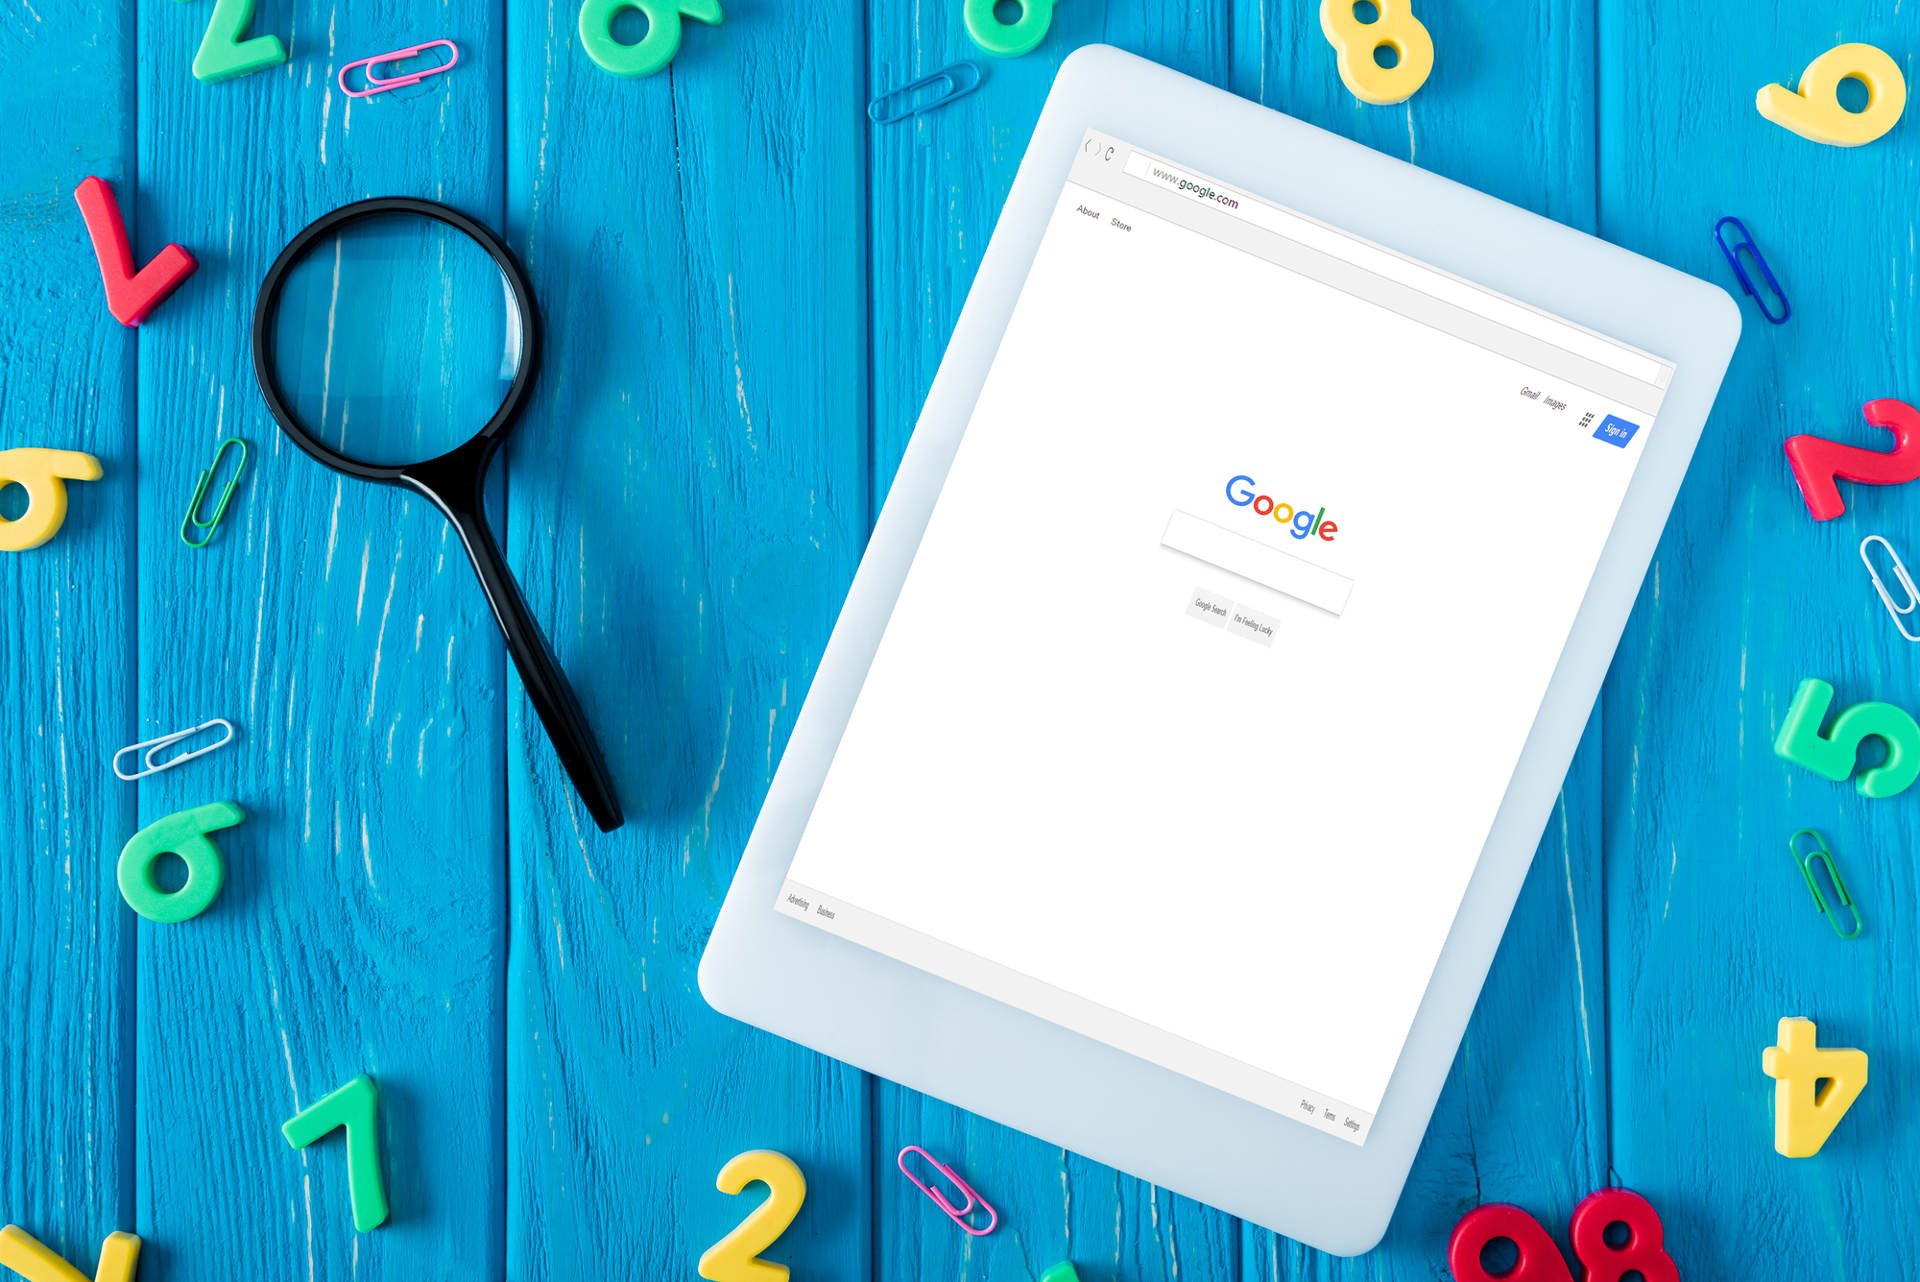 How to Make Use of SEO in 2018 [Infographic]